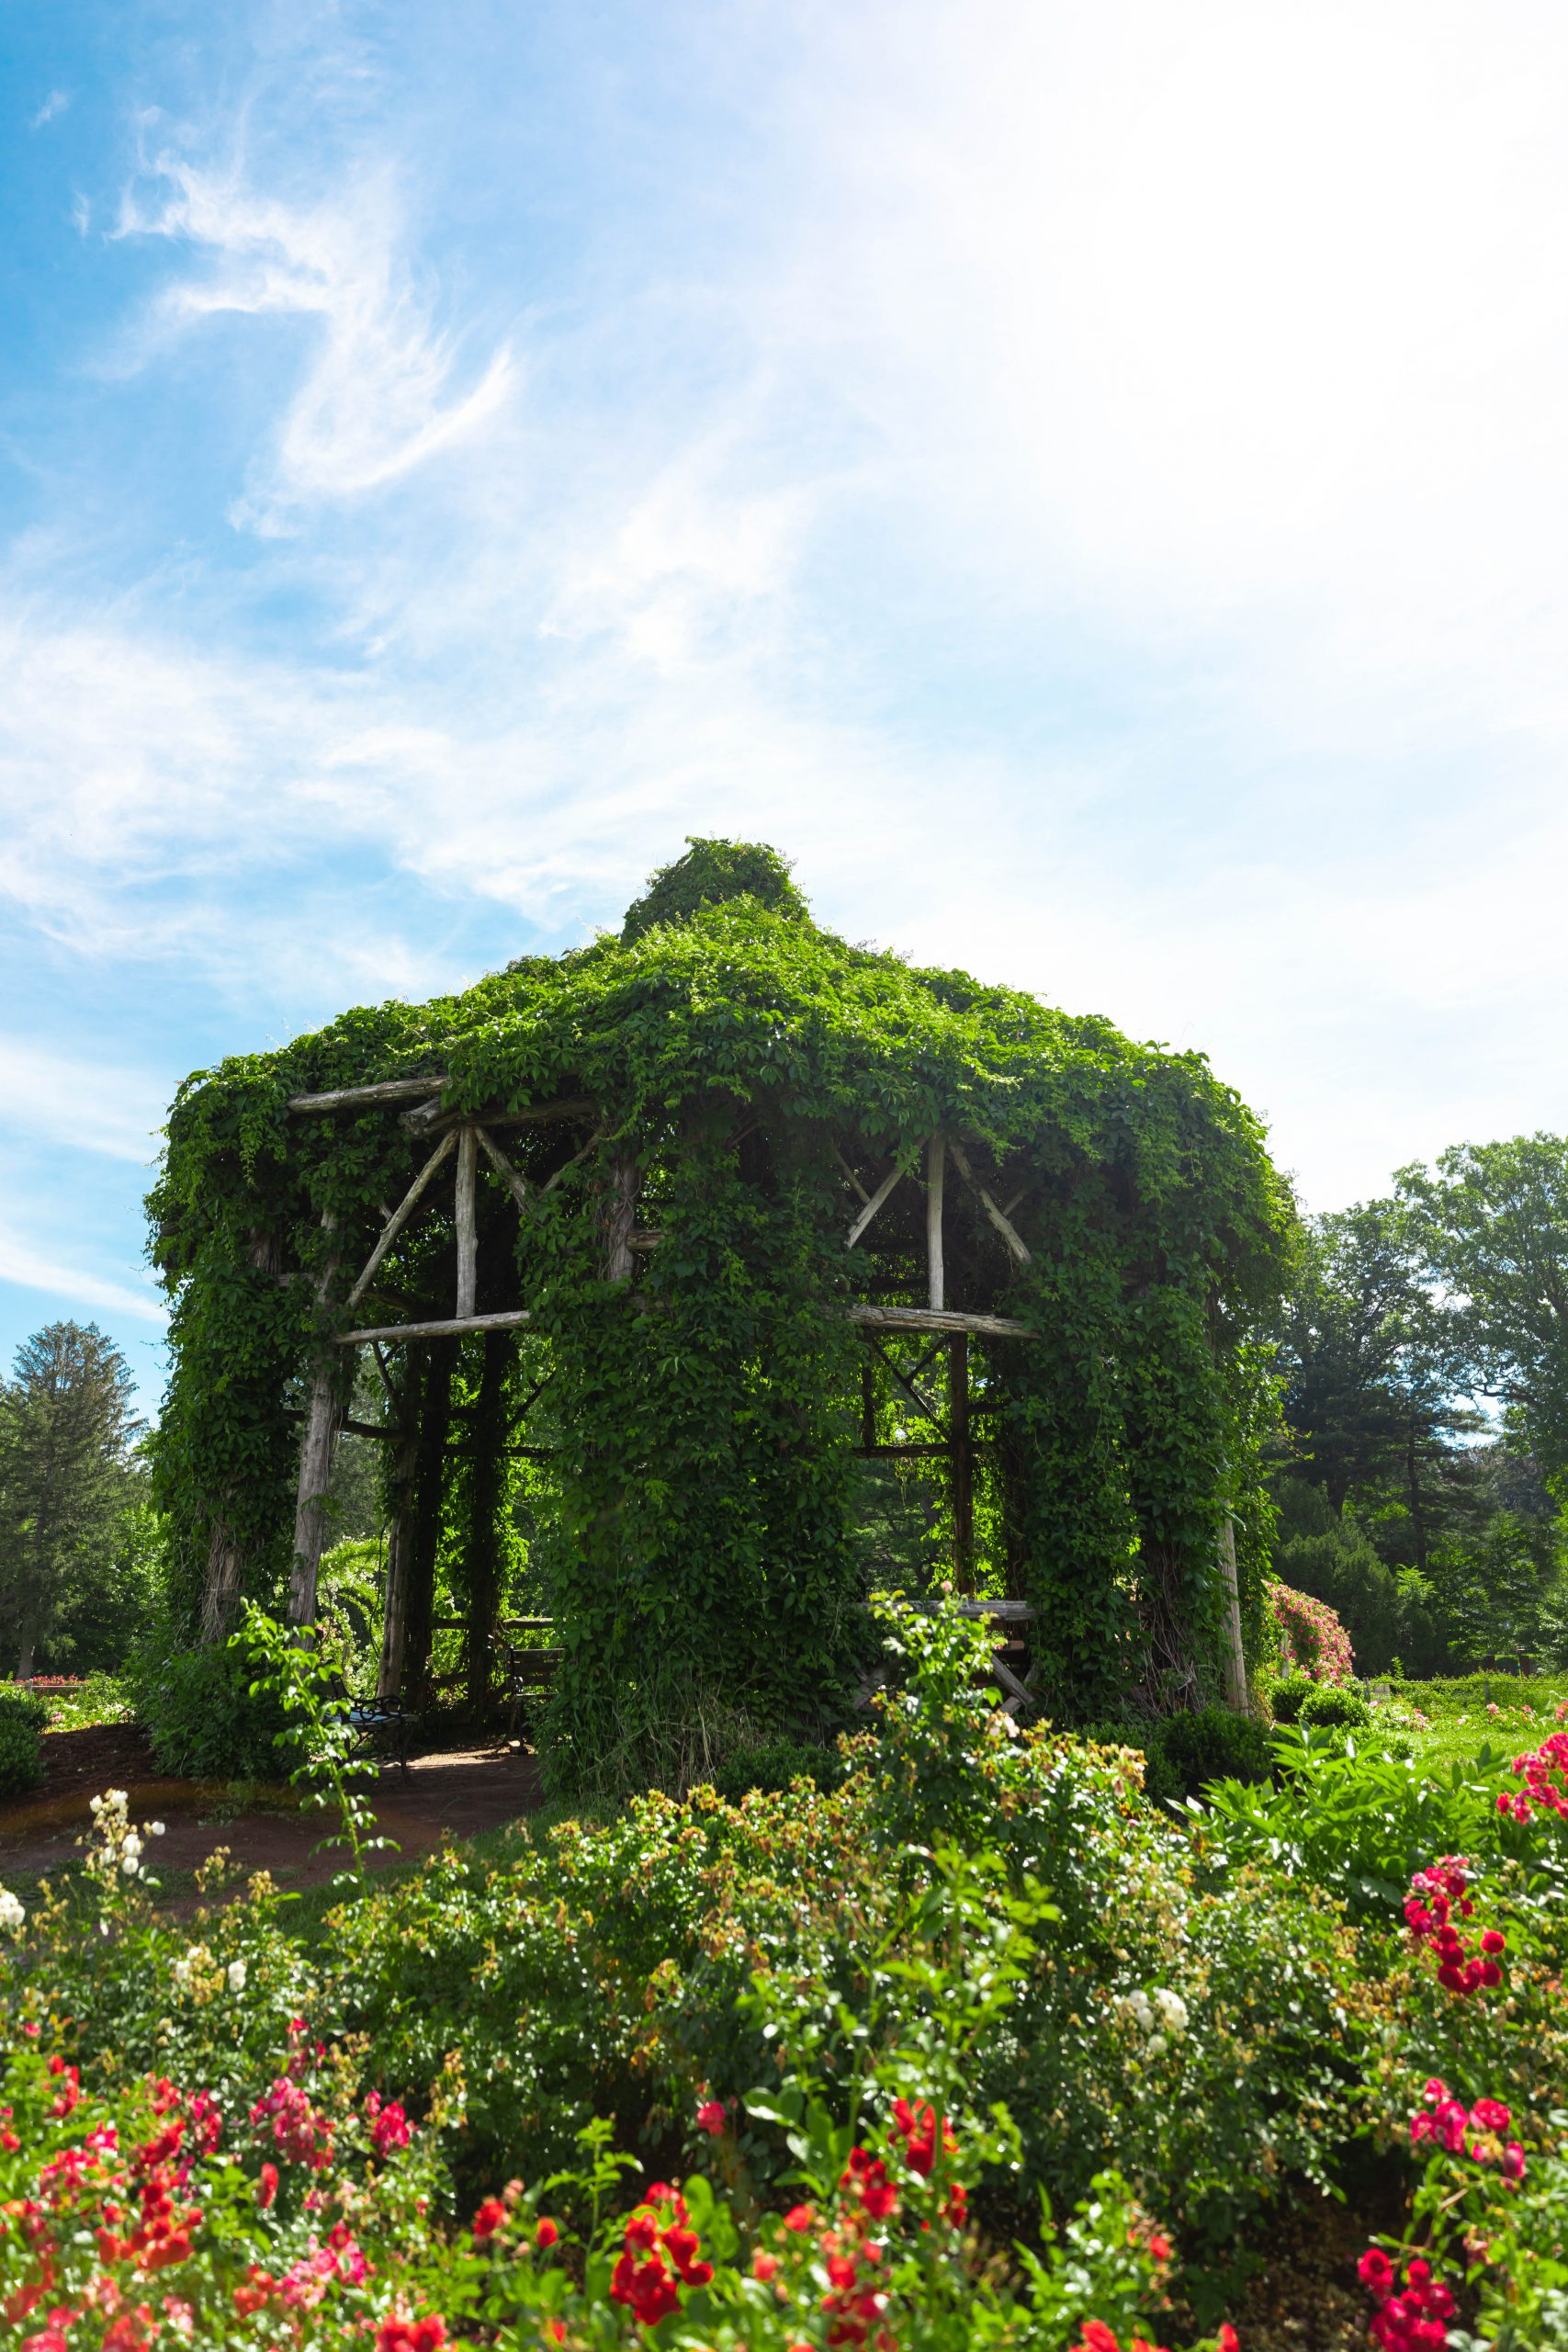 Rustic Summer House Gazebo at The Helen S Kaman Rose Garden within Elizabeth Park in Hartford, Connecticut Photographed by Annie Fairfax